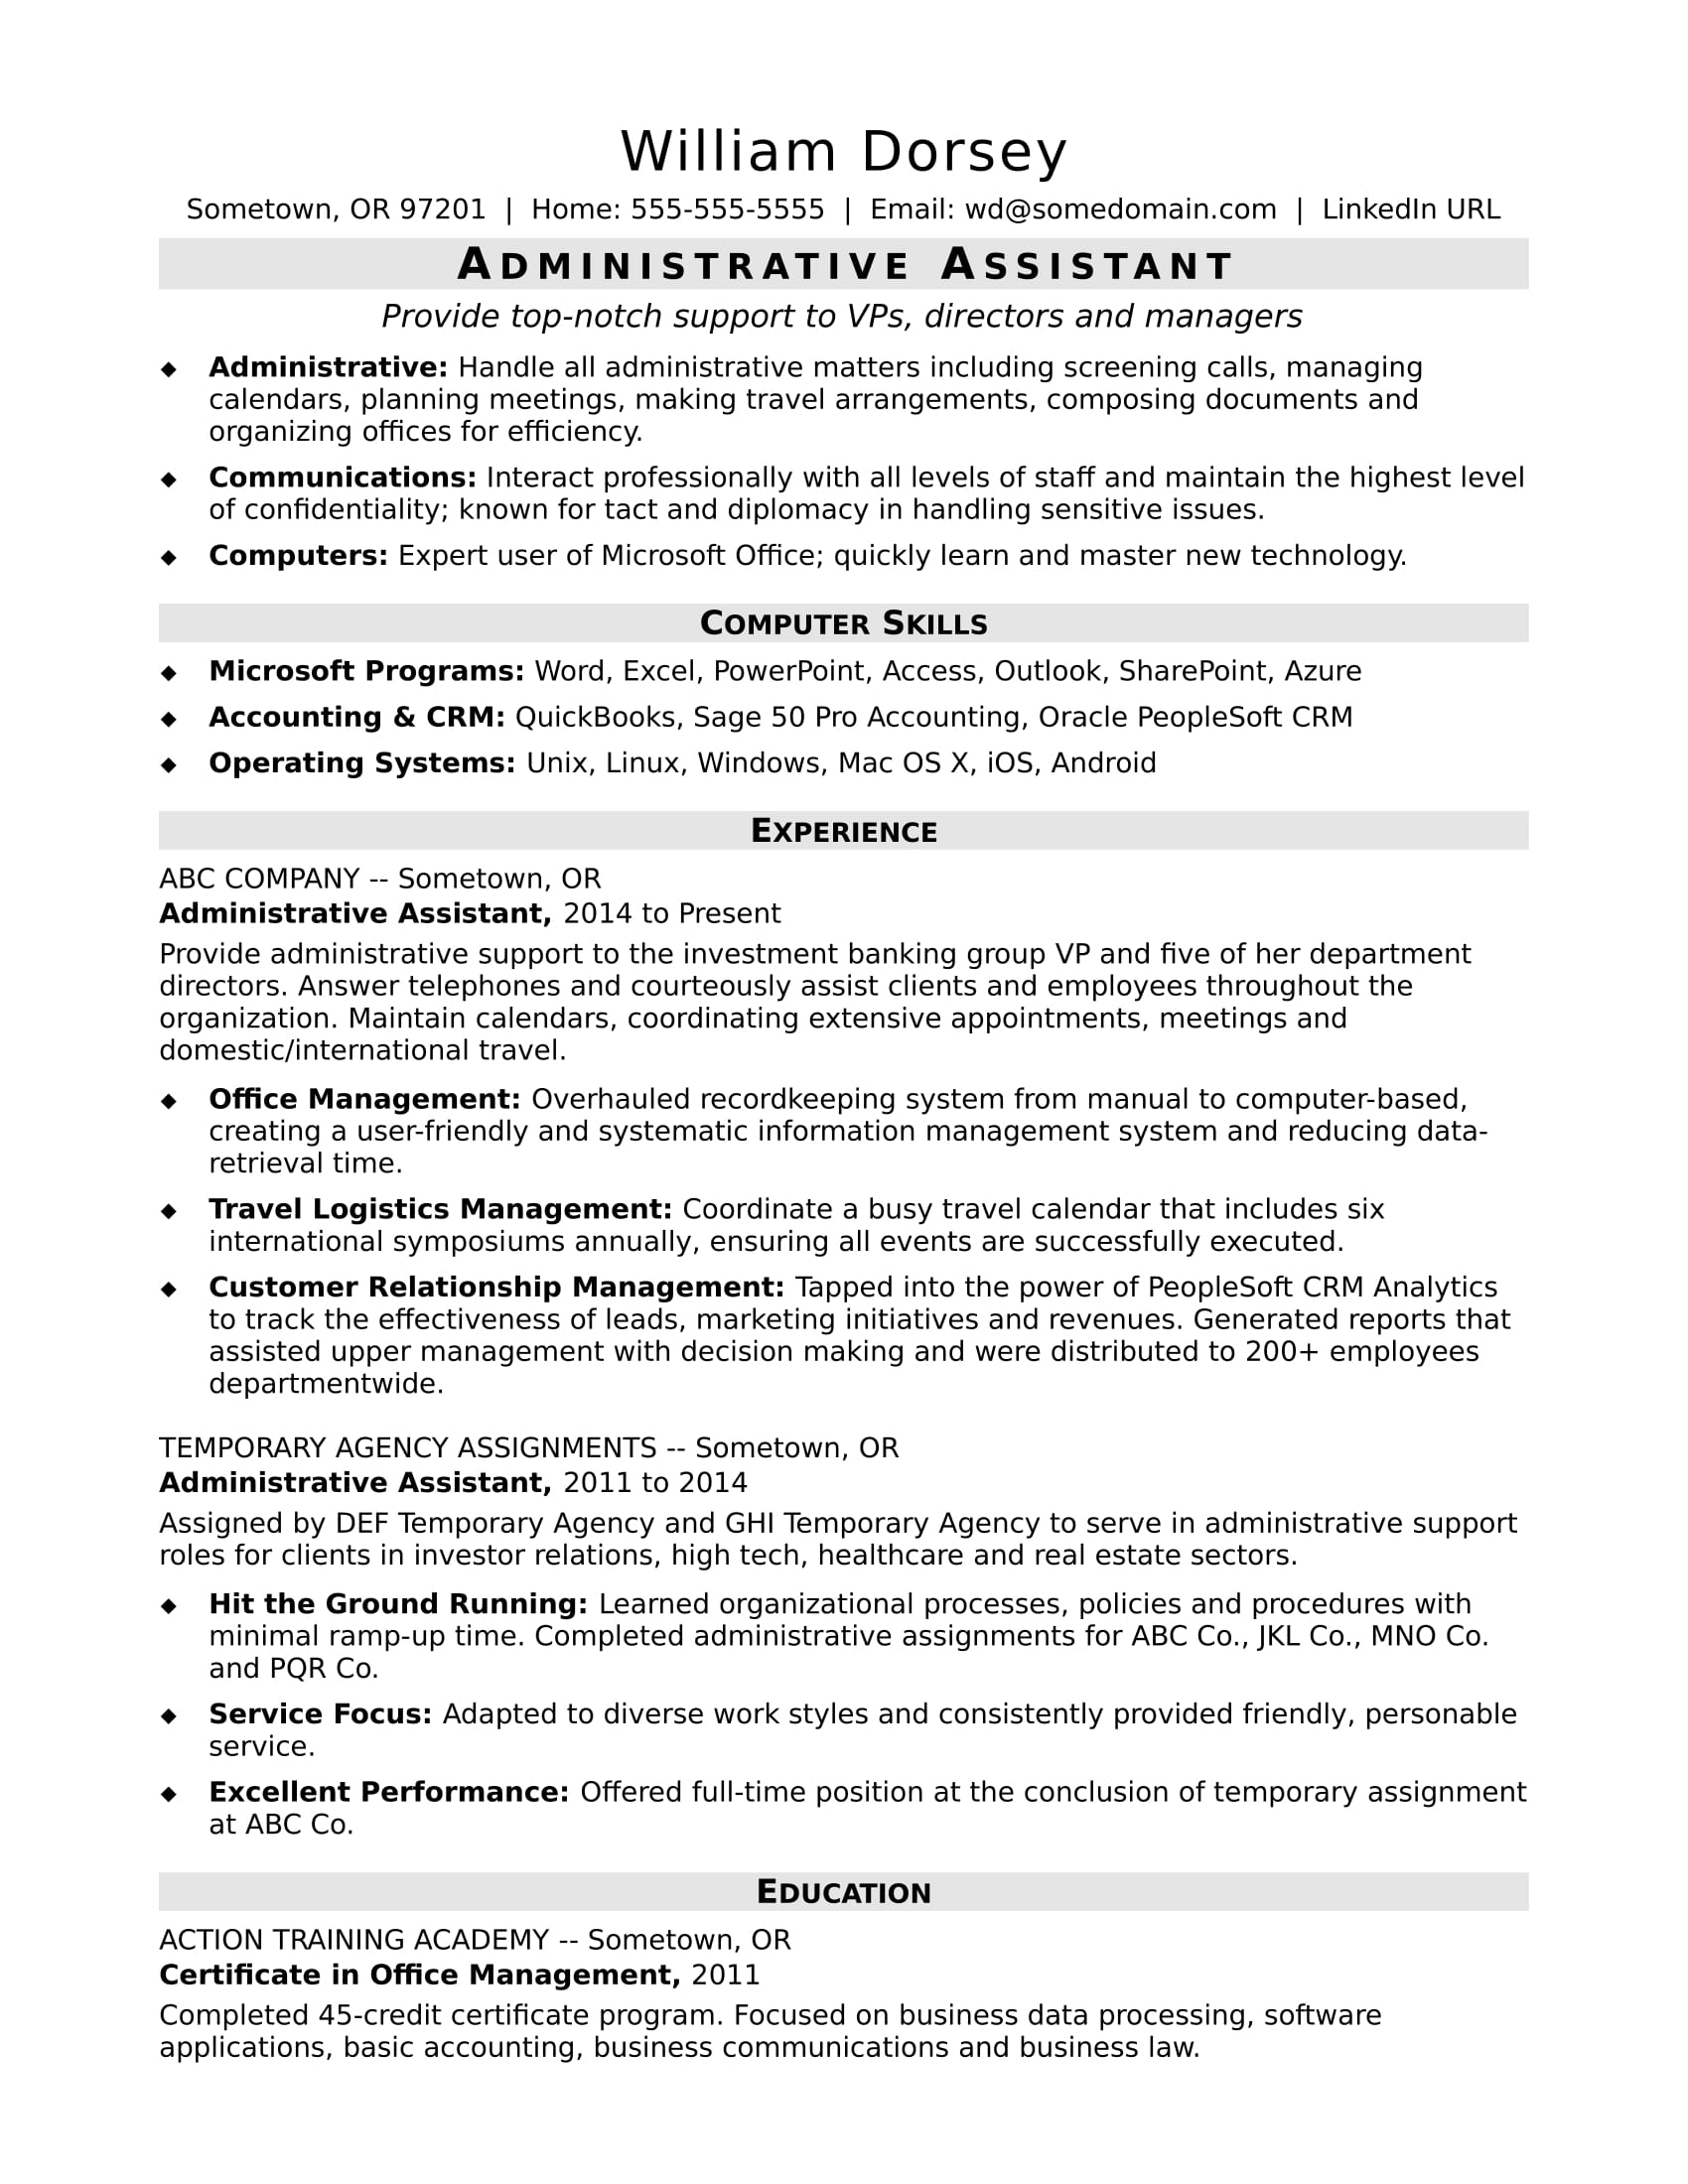 Sample Resume For A Midlevel Administrative Assistant  Sample Resume For Administrative Assistant Position